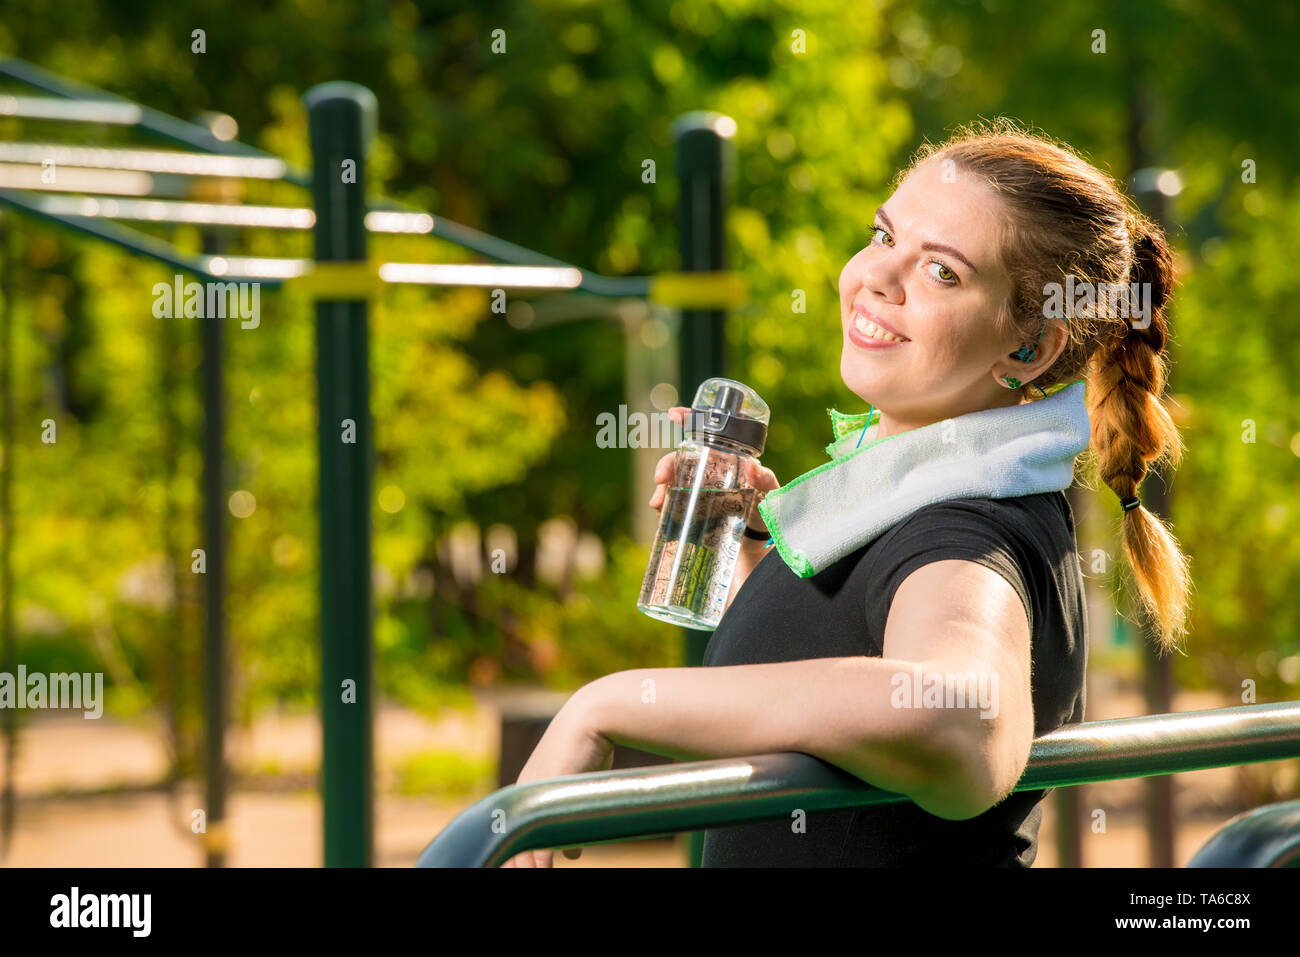 portrait of a happy fat woman with a bottle of water next to a simulator in the park - Stock Image